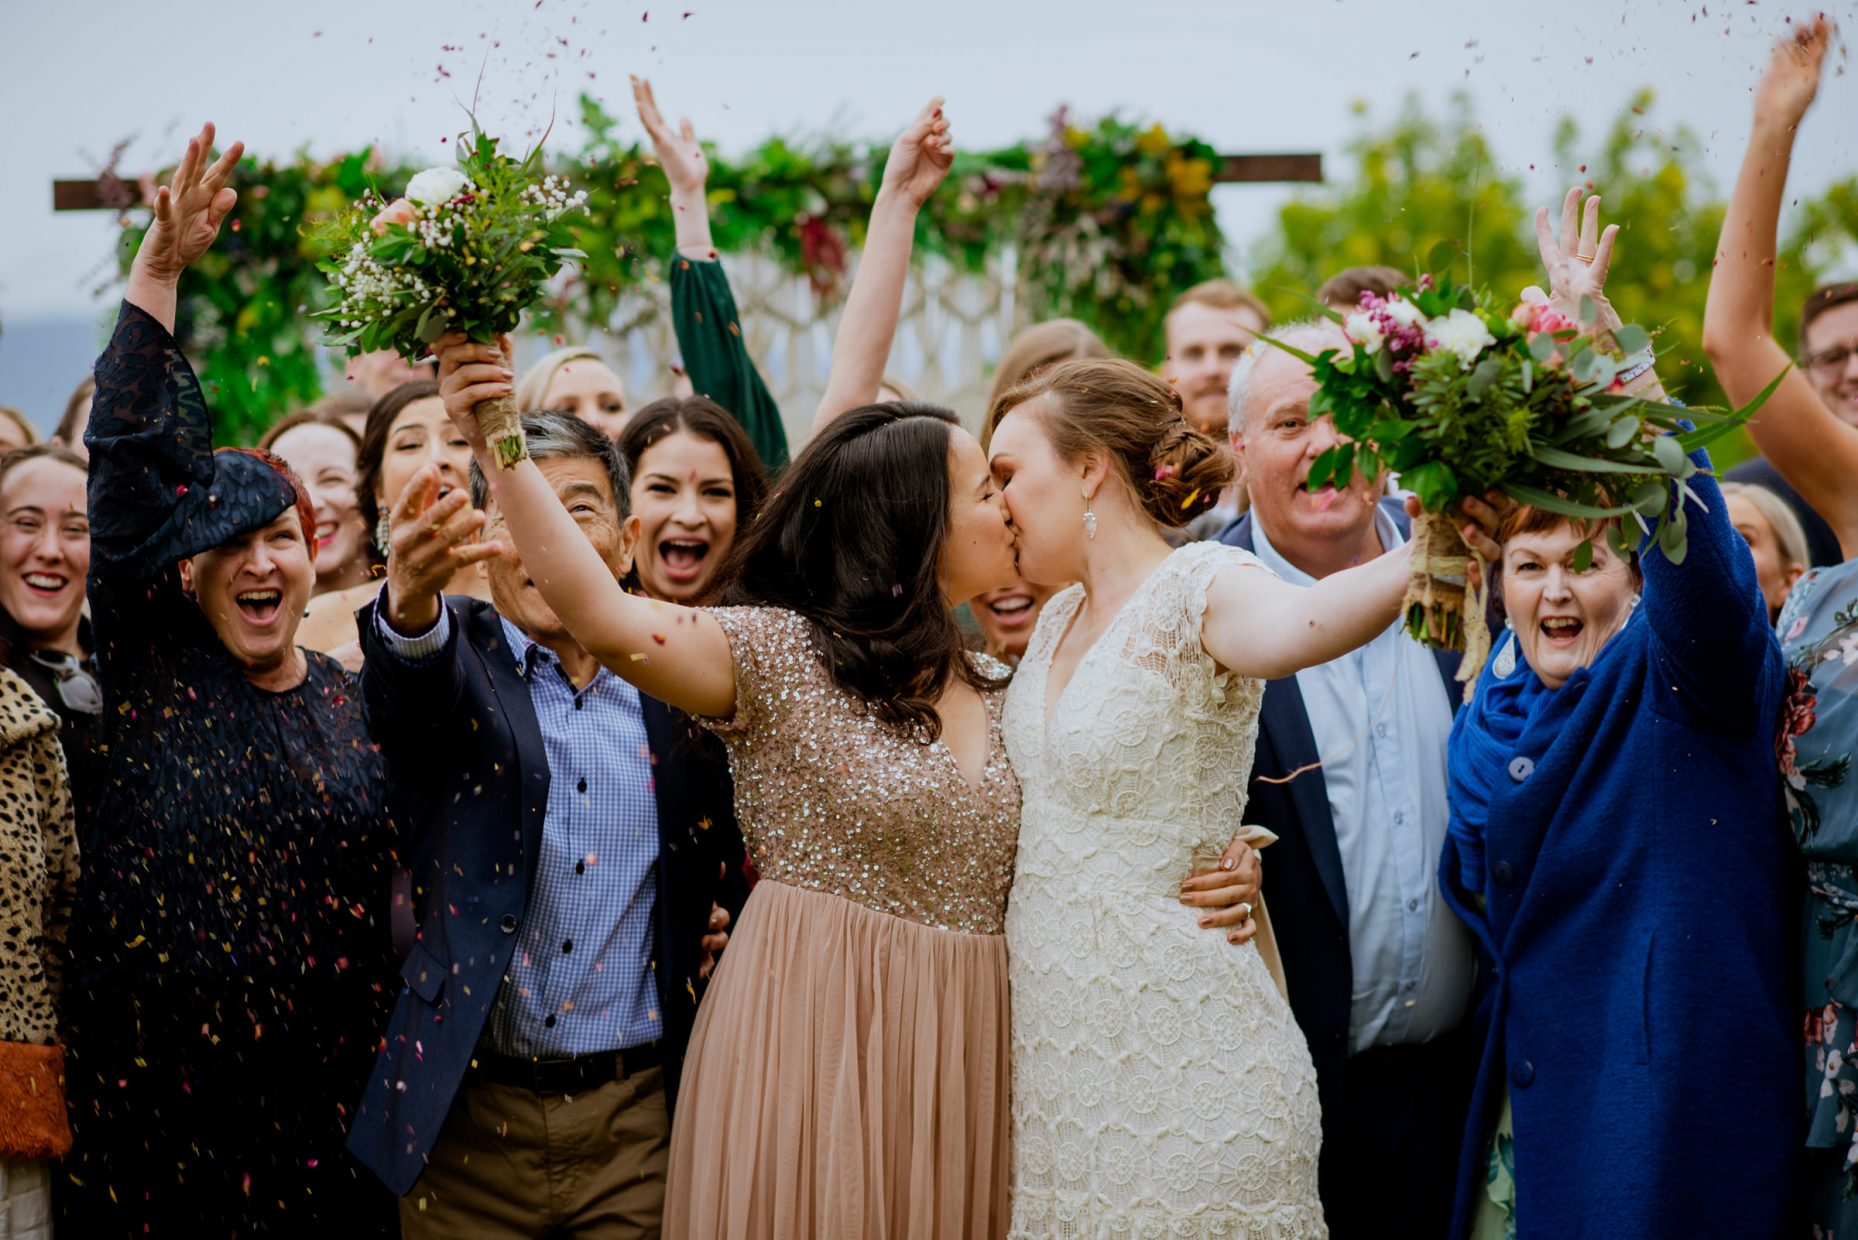 A same-sex couple kiss and hold their bouquets up as wedding guests all cheer